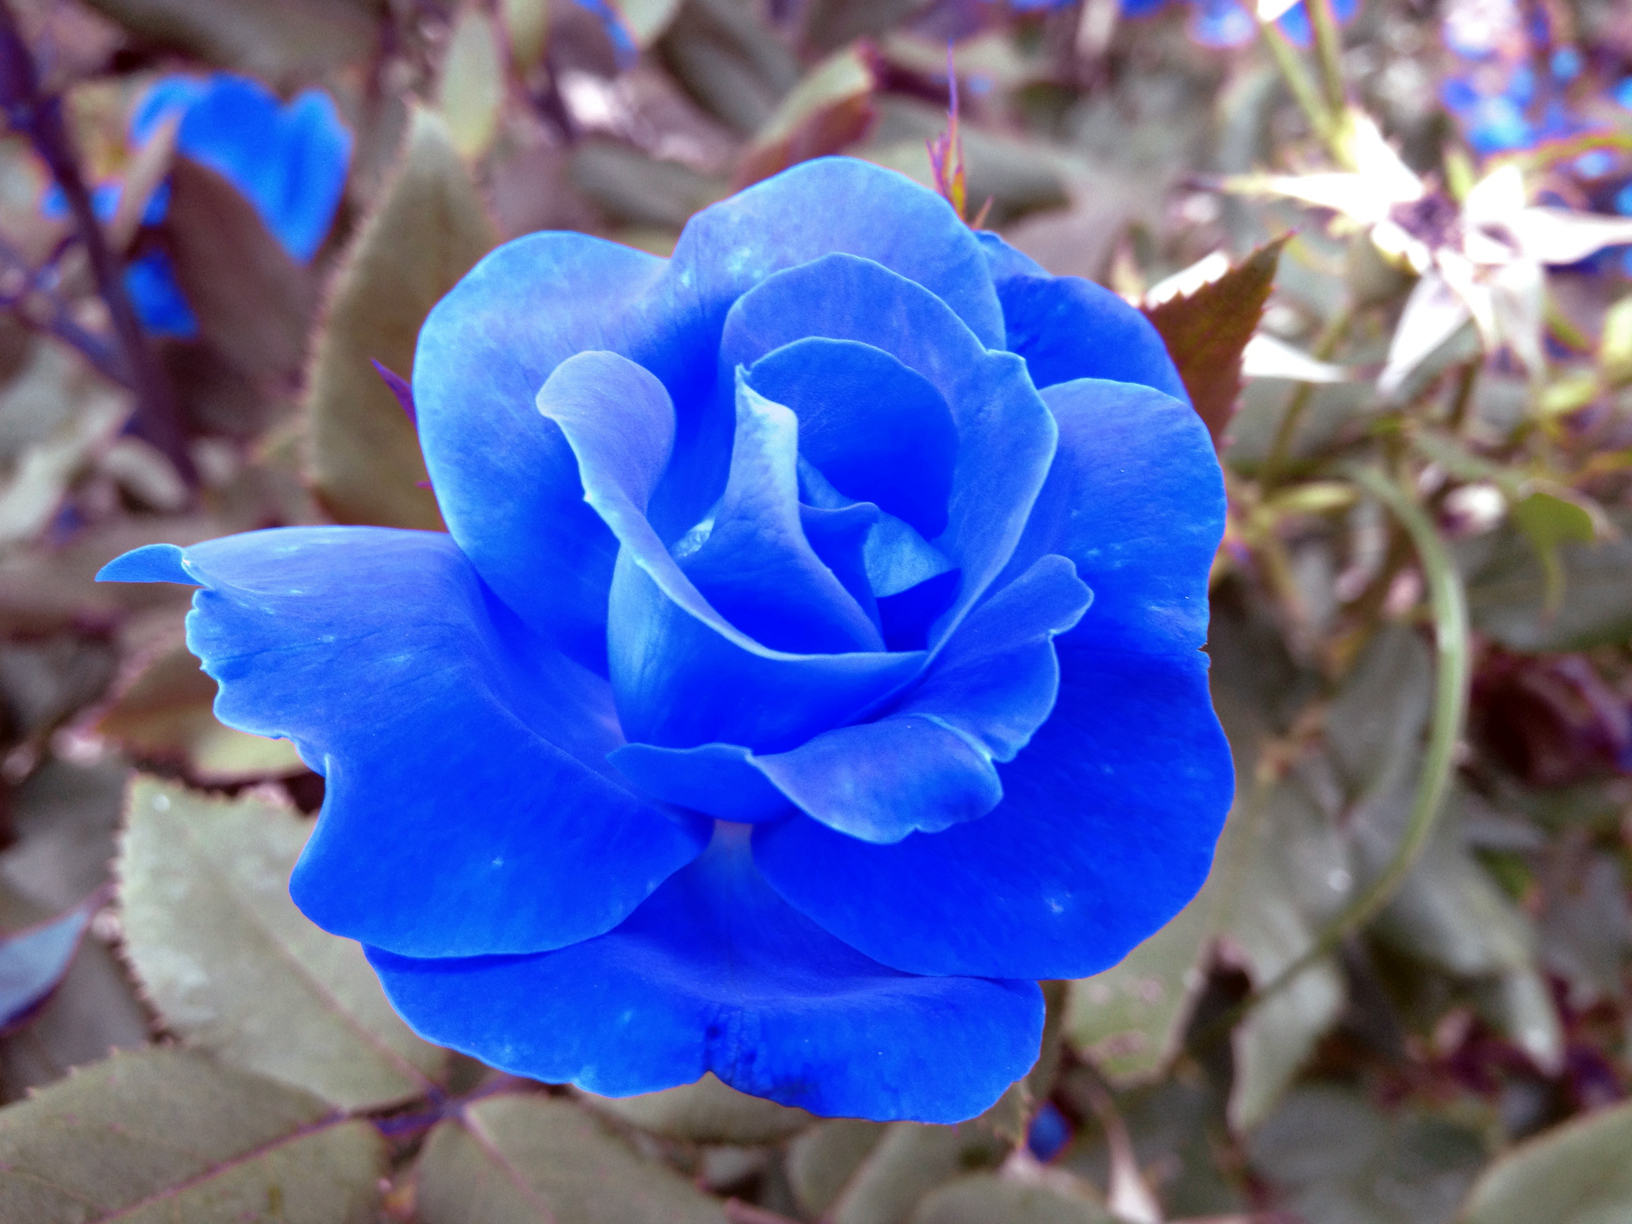 Cool hd wood wallpaper download free wallpapers and desktop - Eletragesi Blue Rose I Love You Images